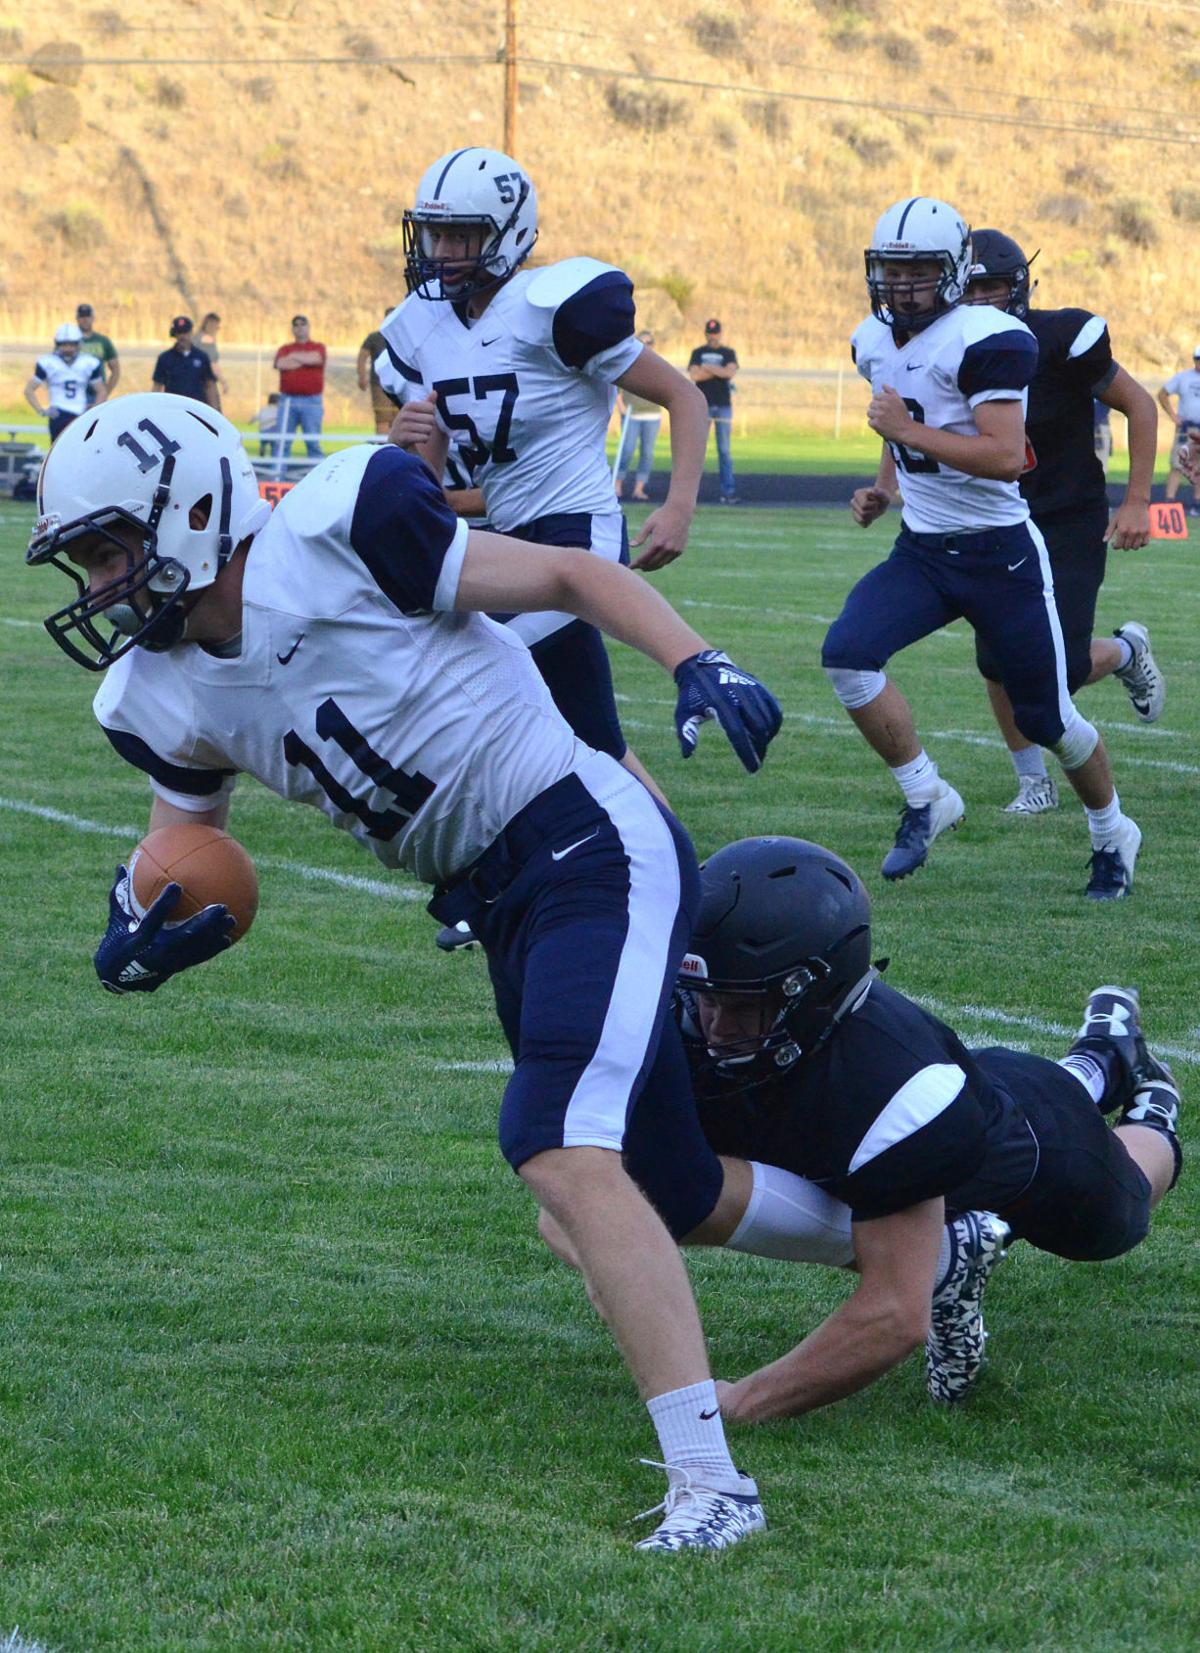 Prospectors fall to defending state champs in home opener